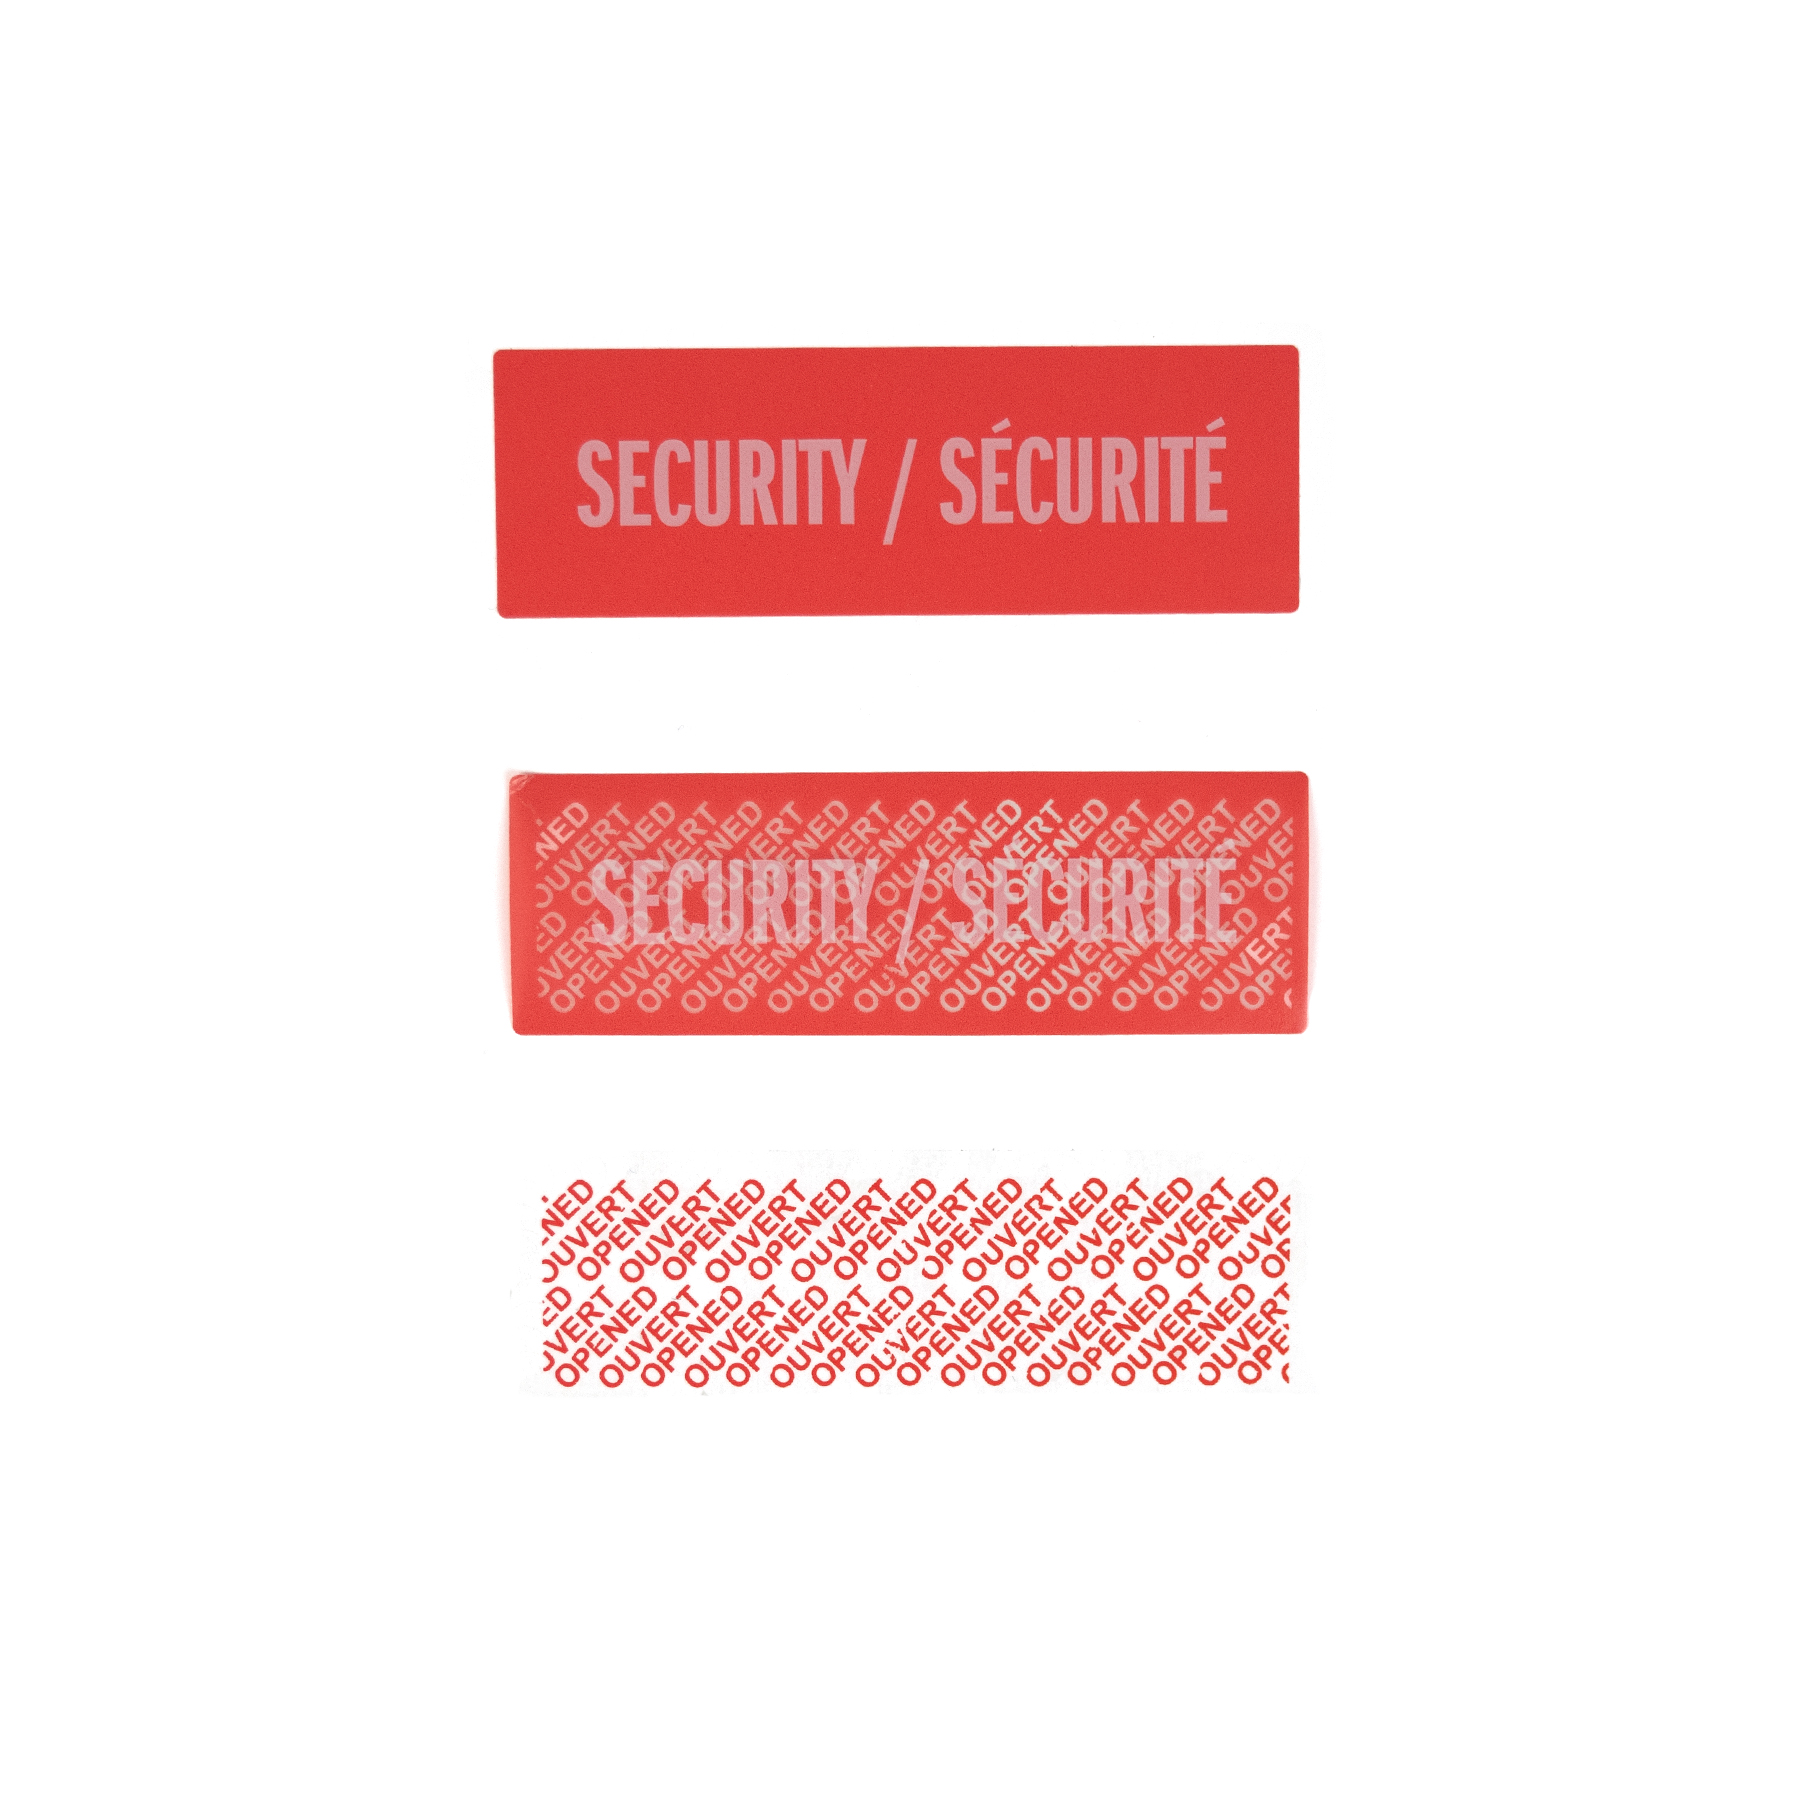 Permanent Tamper evident Security Label with Surface print